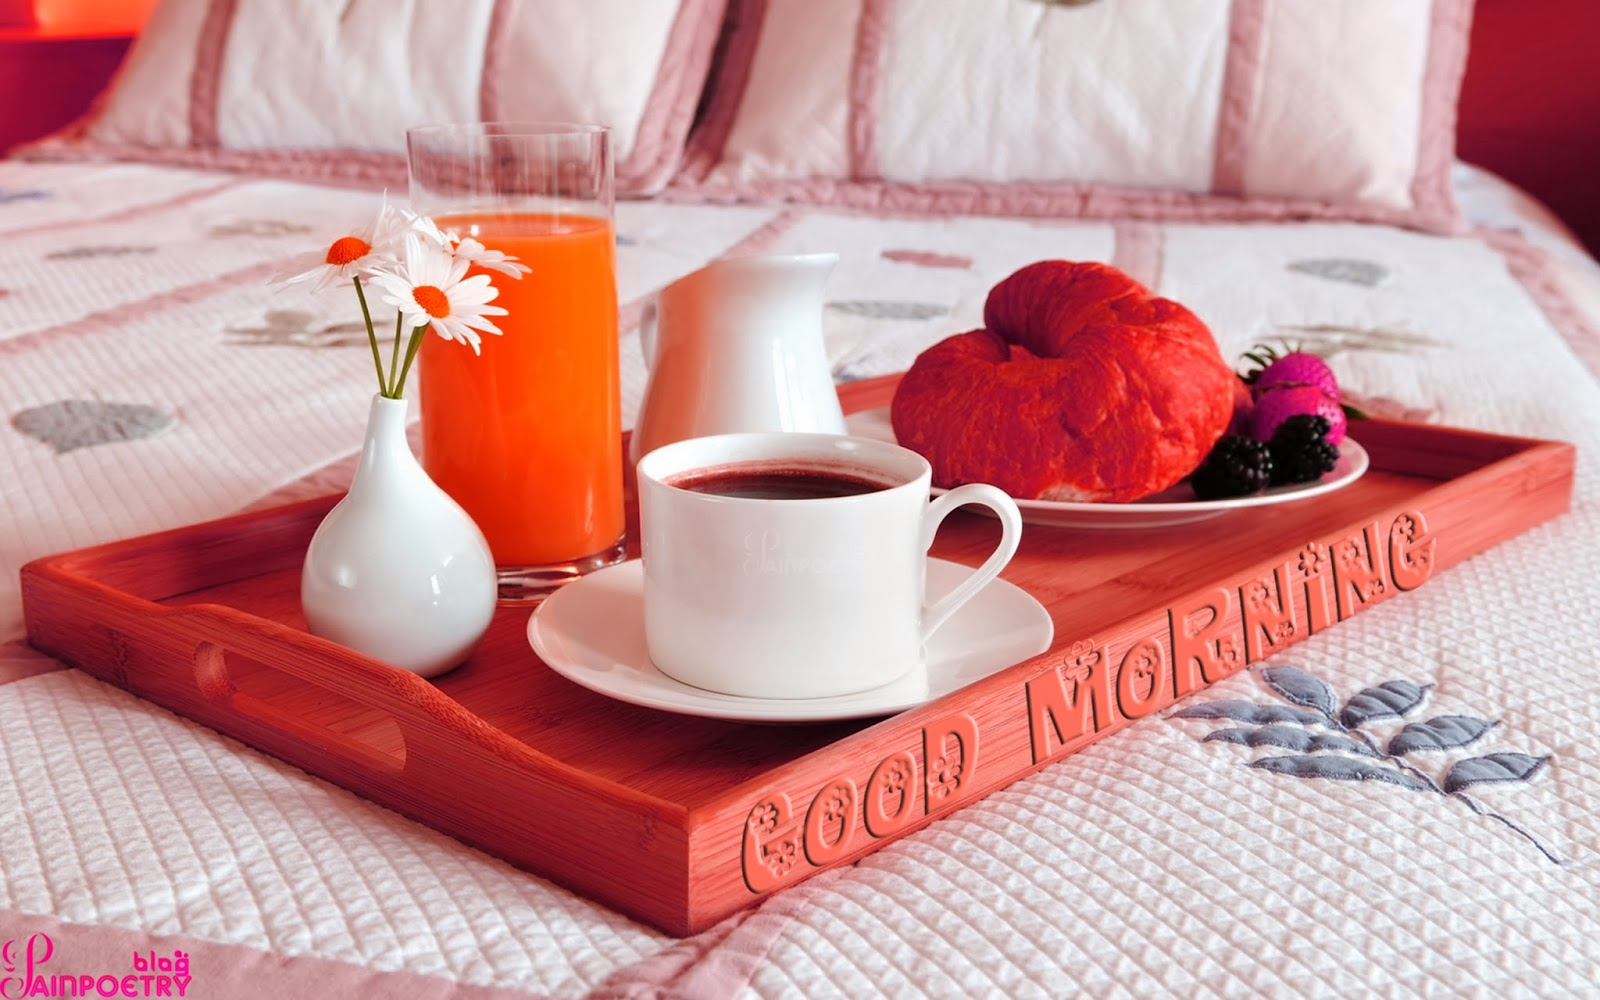 Good-Morning-Wishes-Wallpaper-With-A-Cup-Of-Tea-On-Bed-Image-HD-Wide